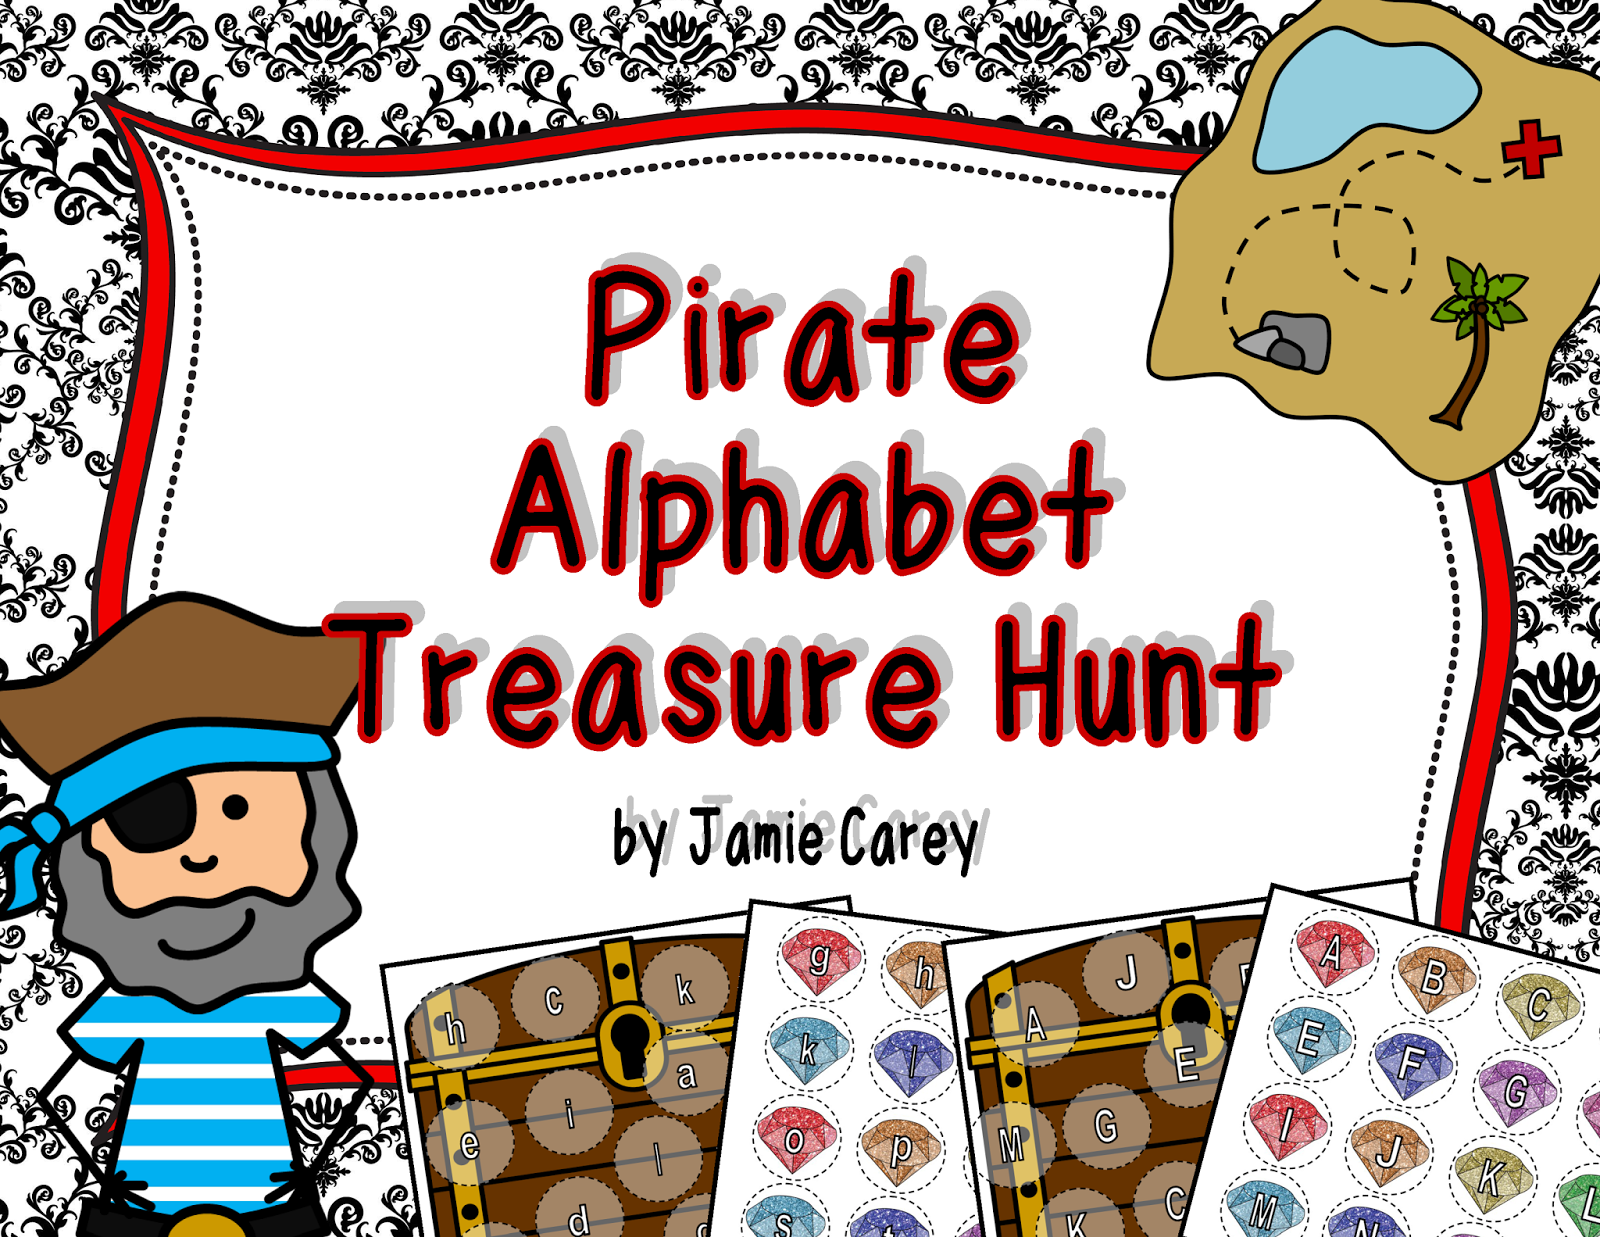 http://www.teacherspayteachers.com/Product/Pirate-Alphabet-Treasure-Hunt-1373632